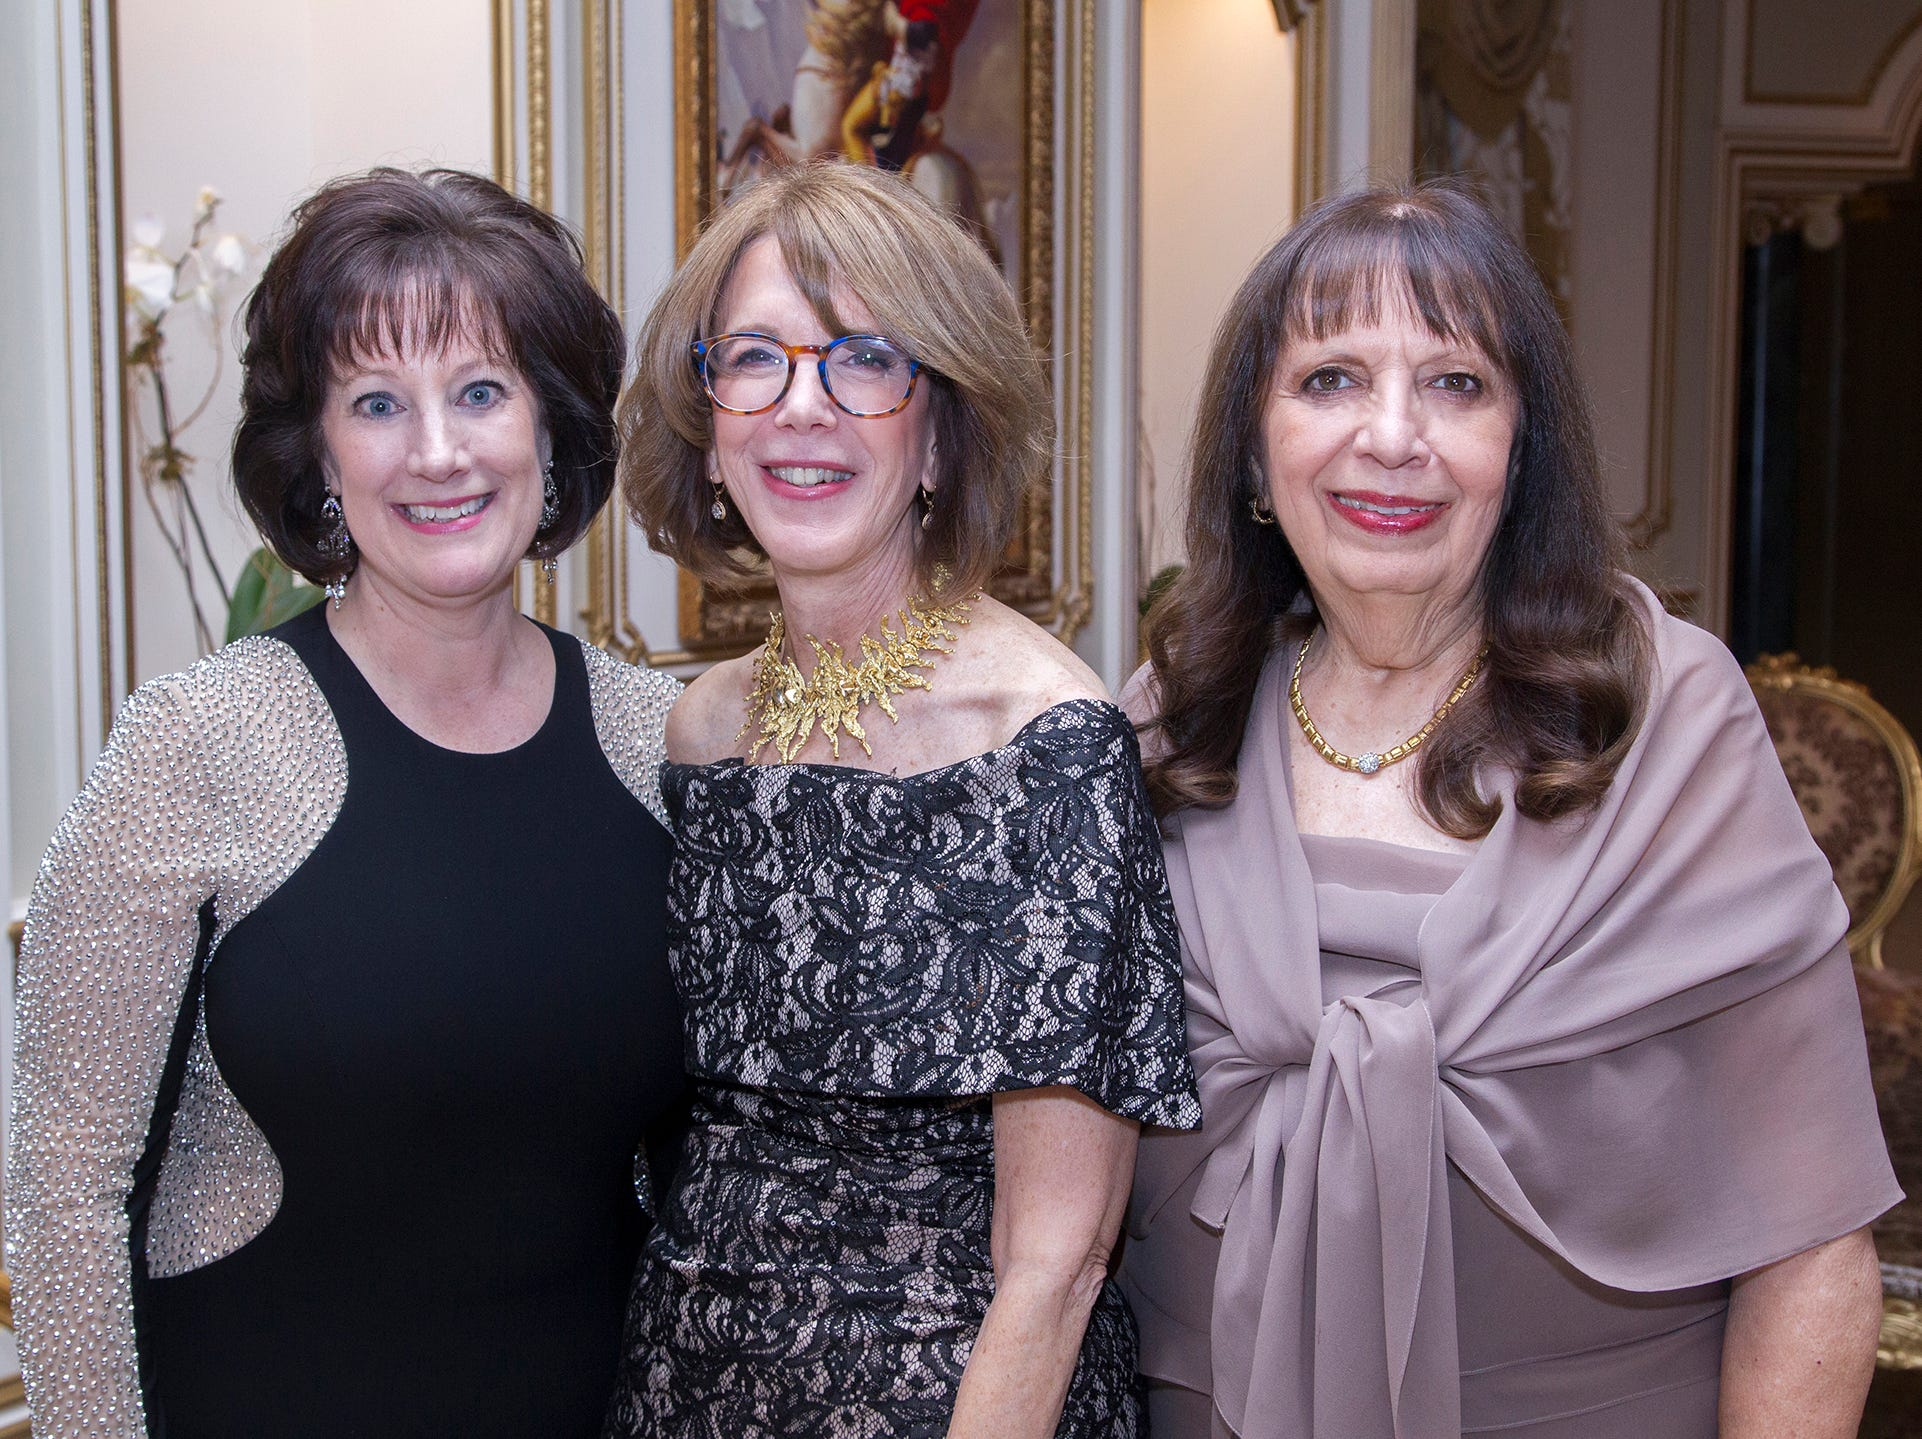 Chairwomen. Denise Downey, Elaine Heinberger, Carol Gillespie.The 72nd Annual Valley Ball gala at The Legacy Castle in Pompton Plains. 11/16/2018